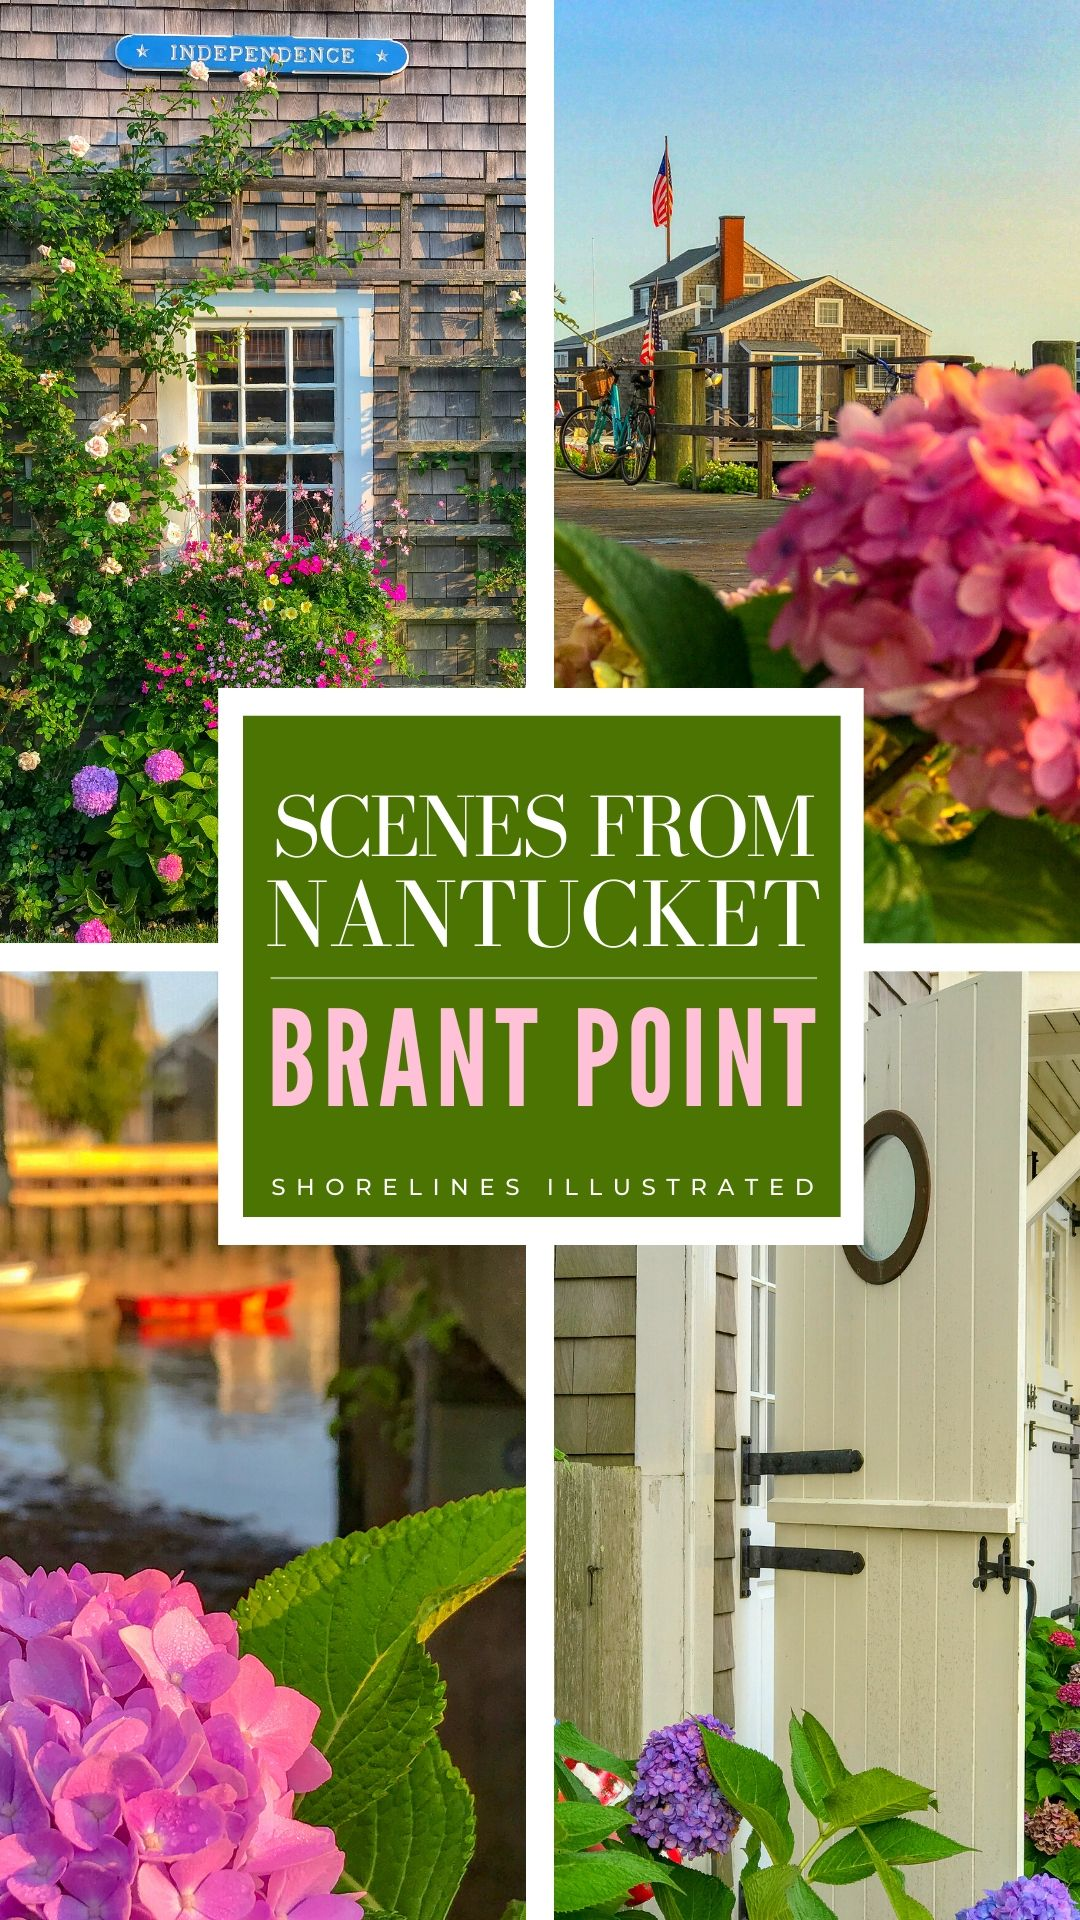 Scenes from Nantucket Brant Point PIN-3